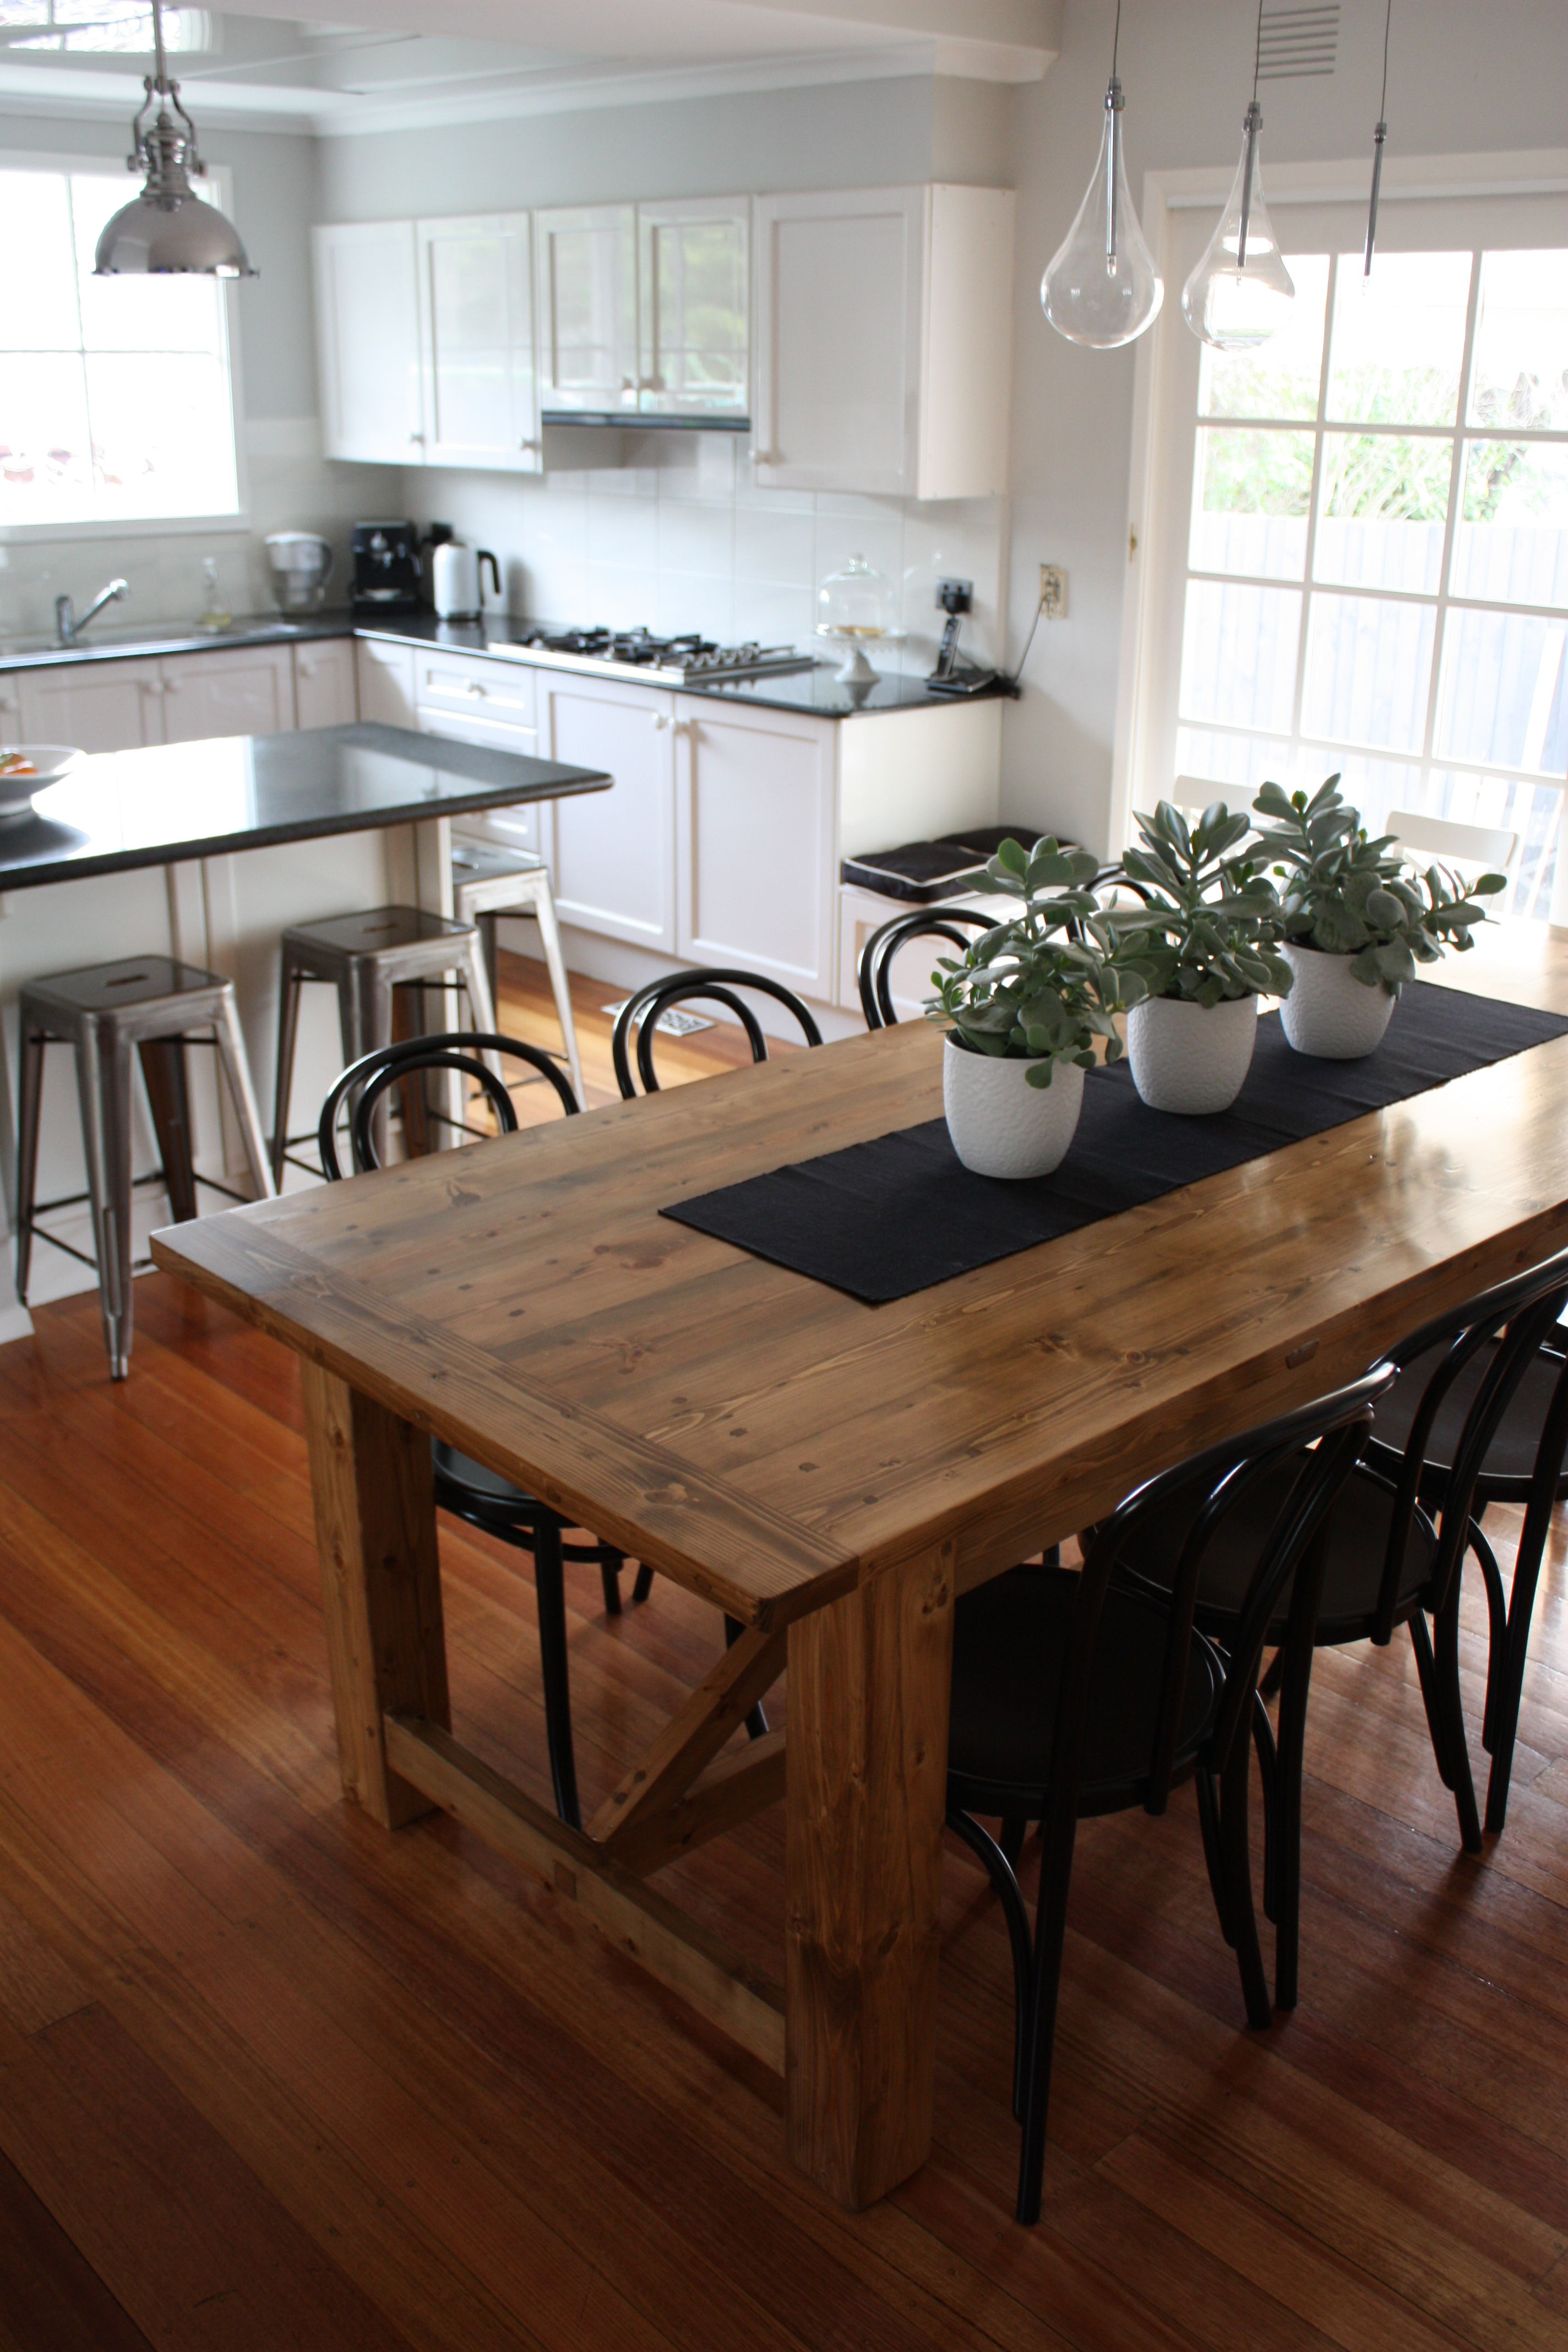 Rustic Dining Table Pairs With Bentwood Chairs  Bentwood Chairs Endearing Rustic Wood Dining Room Tables Design Decoration